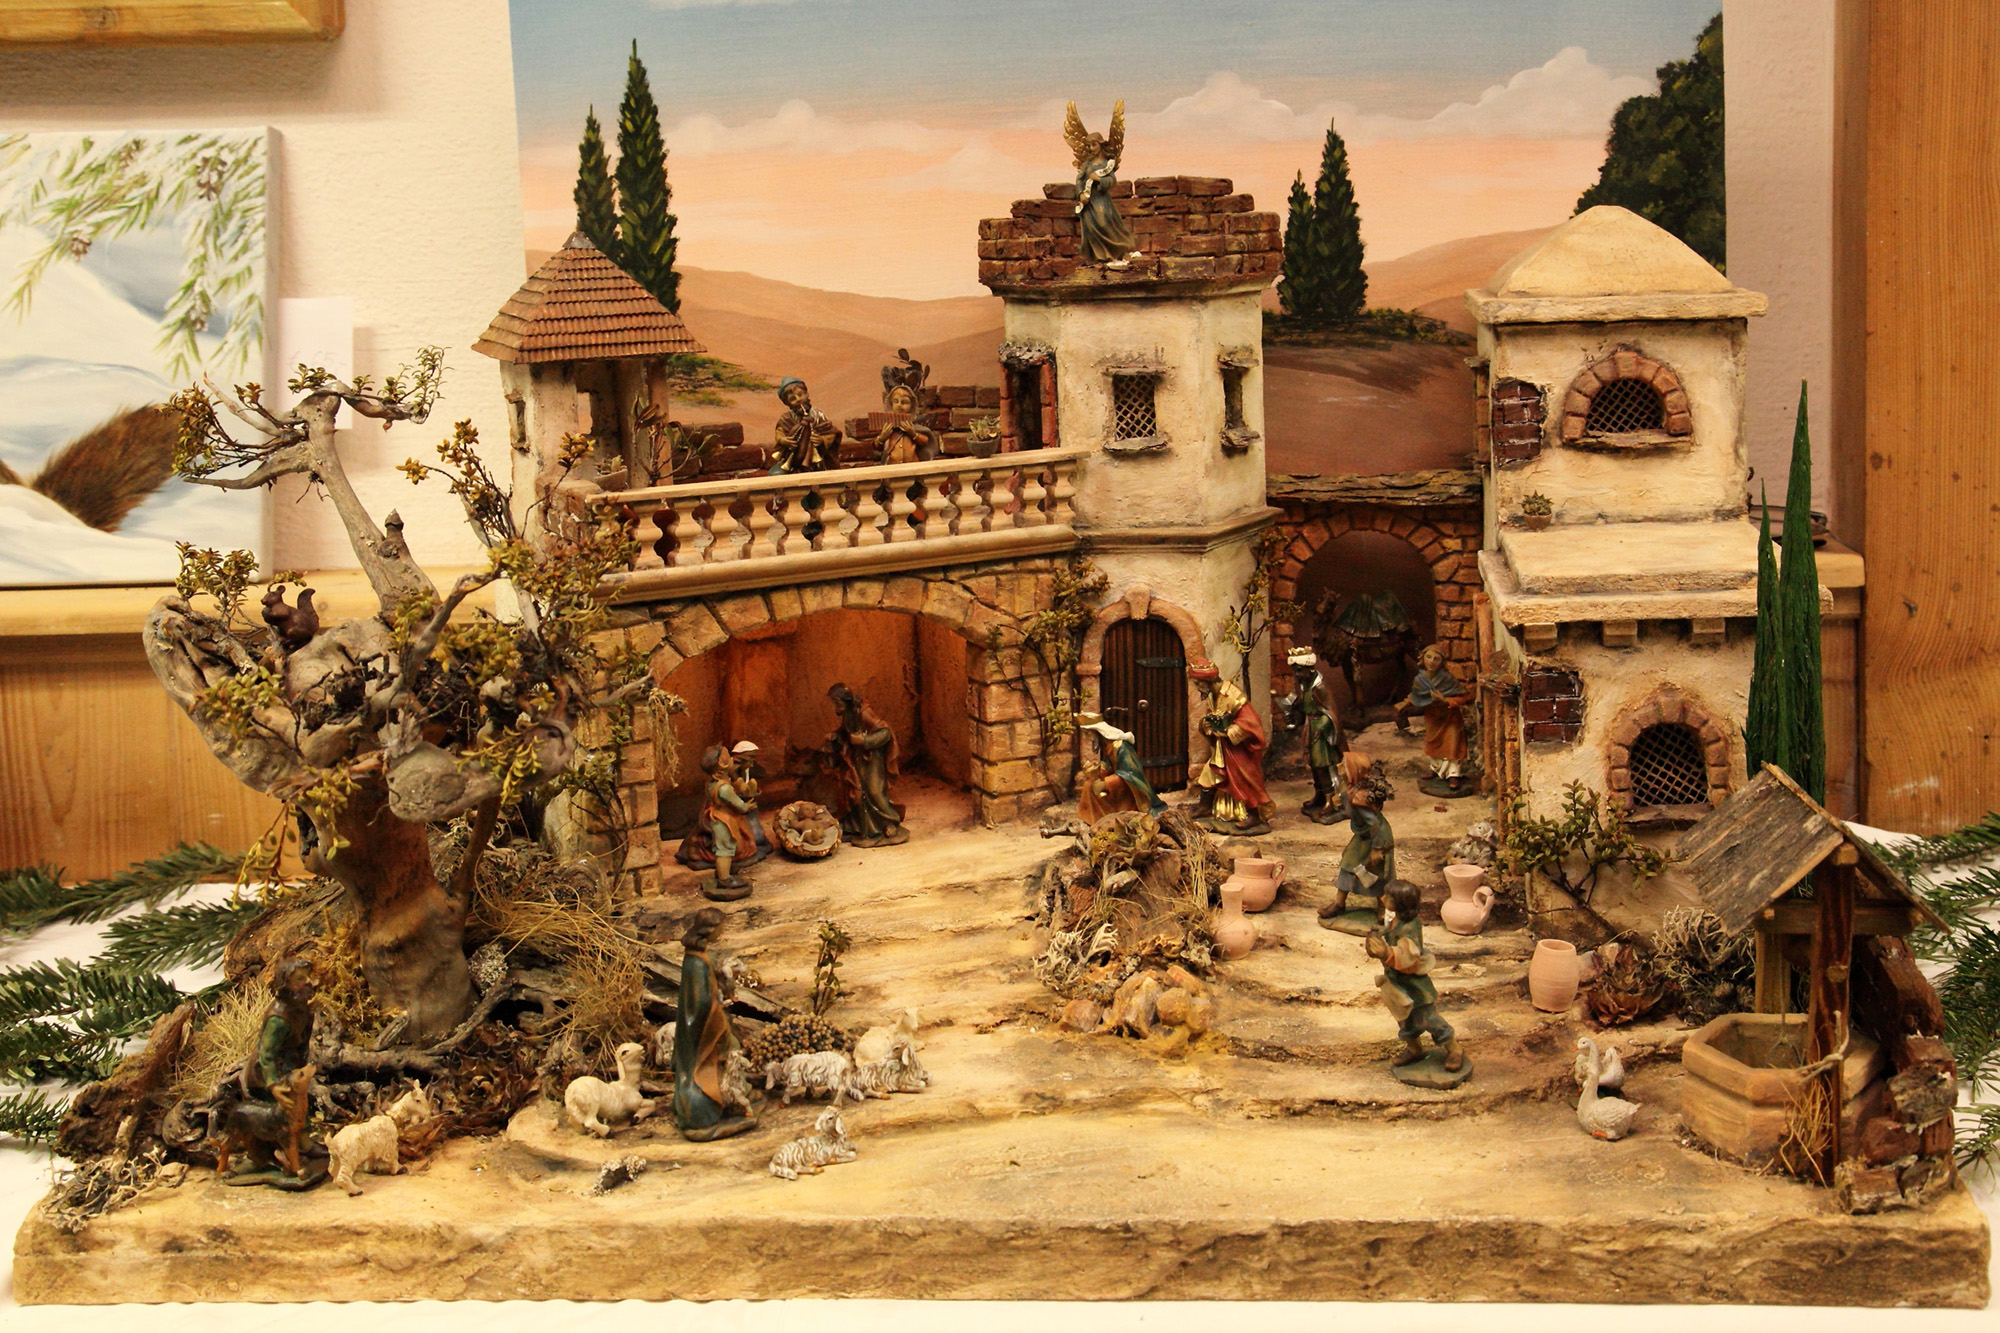 Nativity scene exhibition in Grossarl